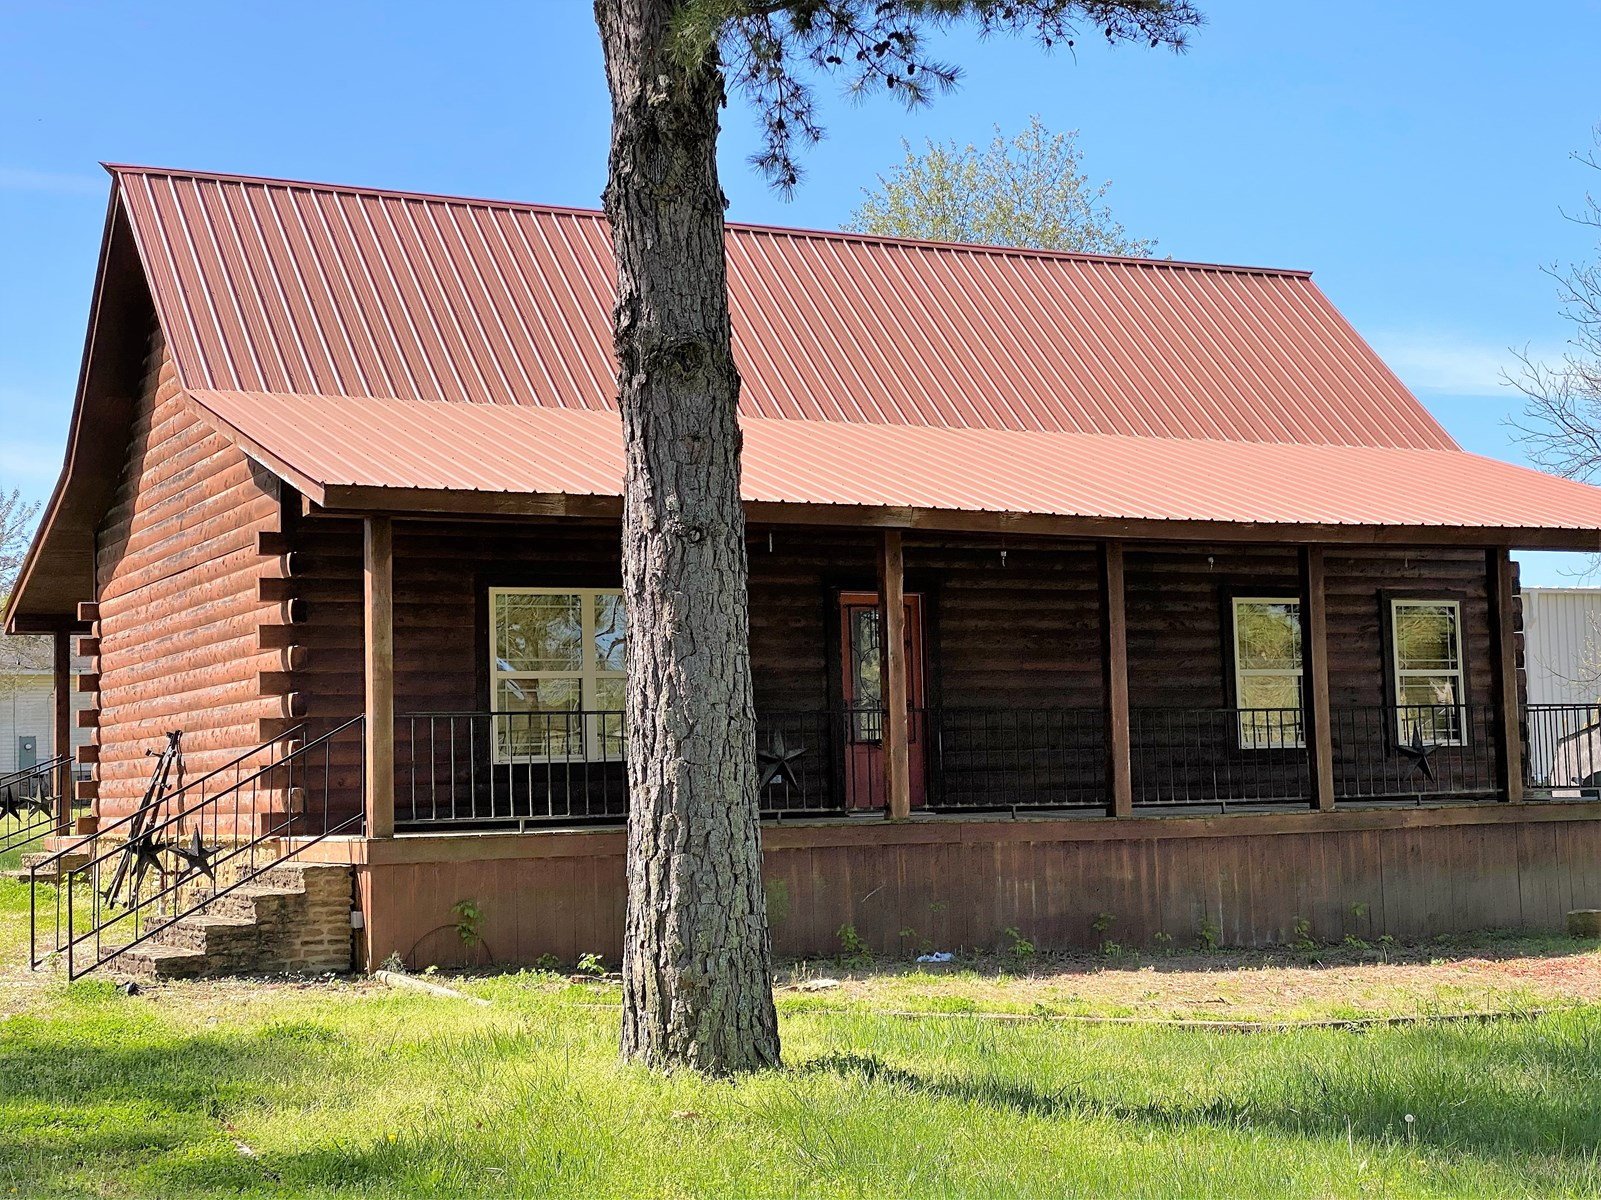 3 BEDROOM 2 BATH LOG HOME LOCATED IN MELBOURNE, ARKANSAS